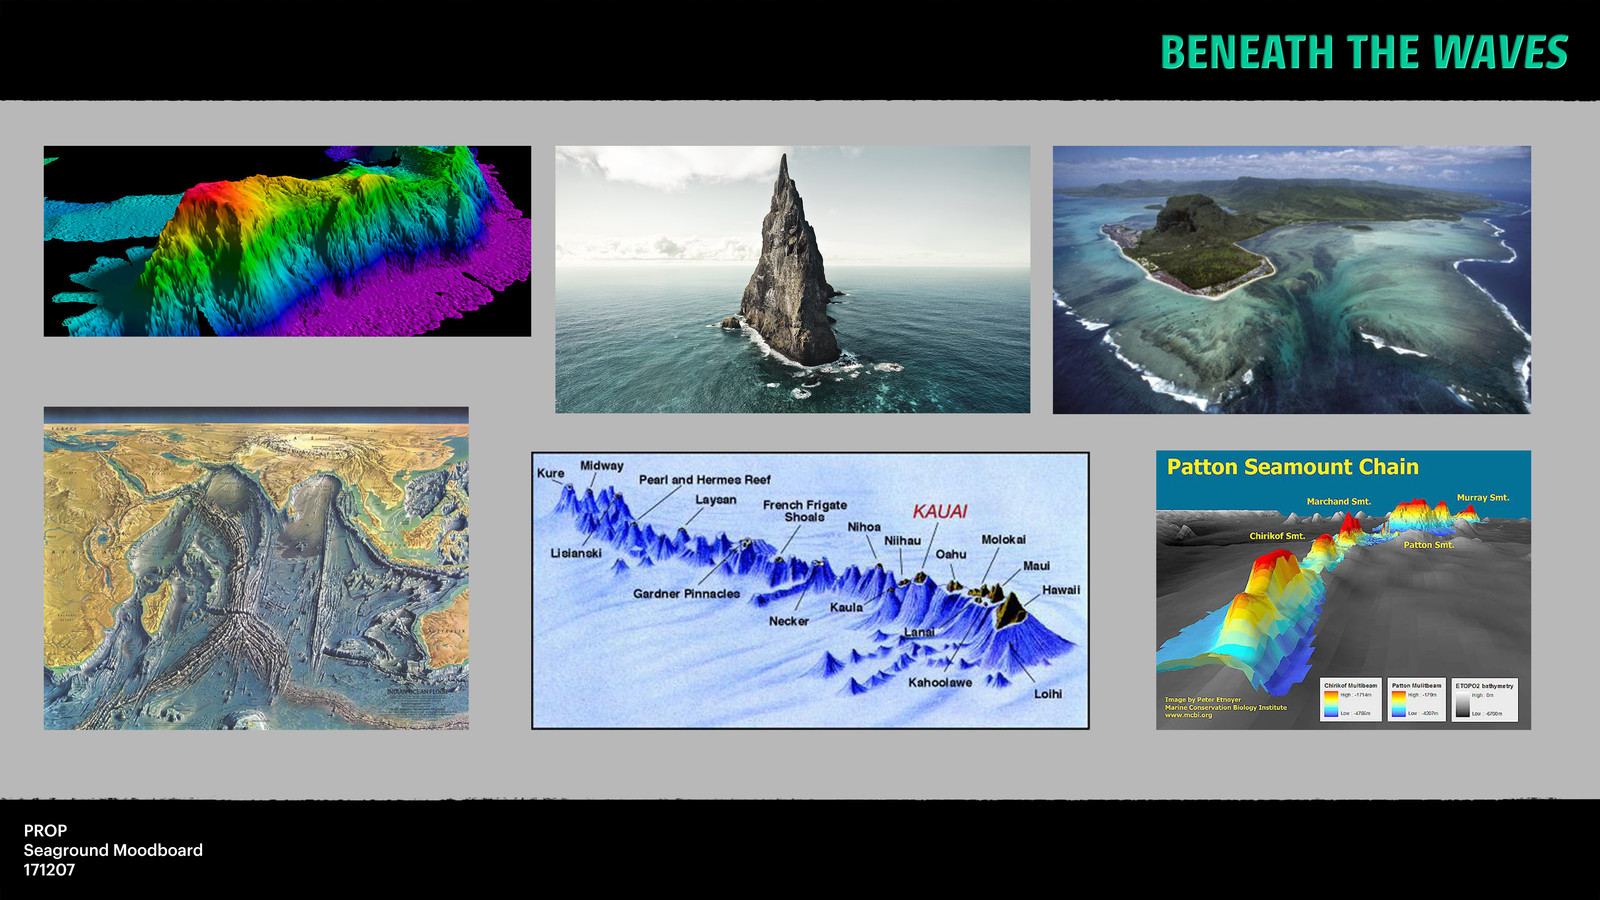 For my seamounts I read some articles on the web and looked into interesting seaground formations.